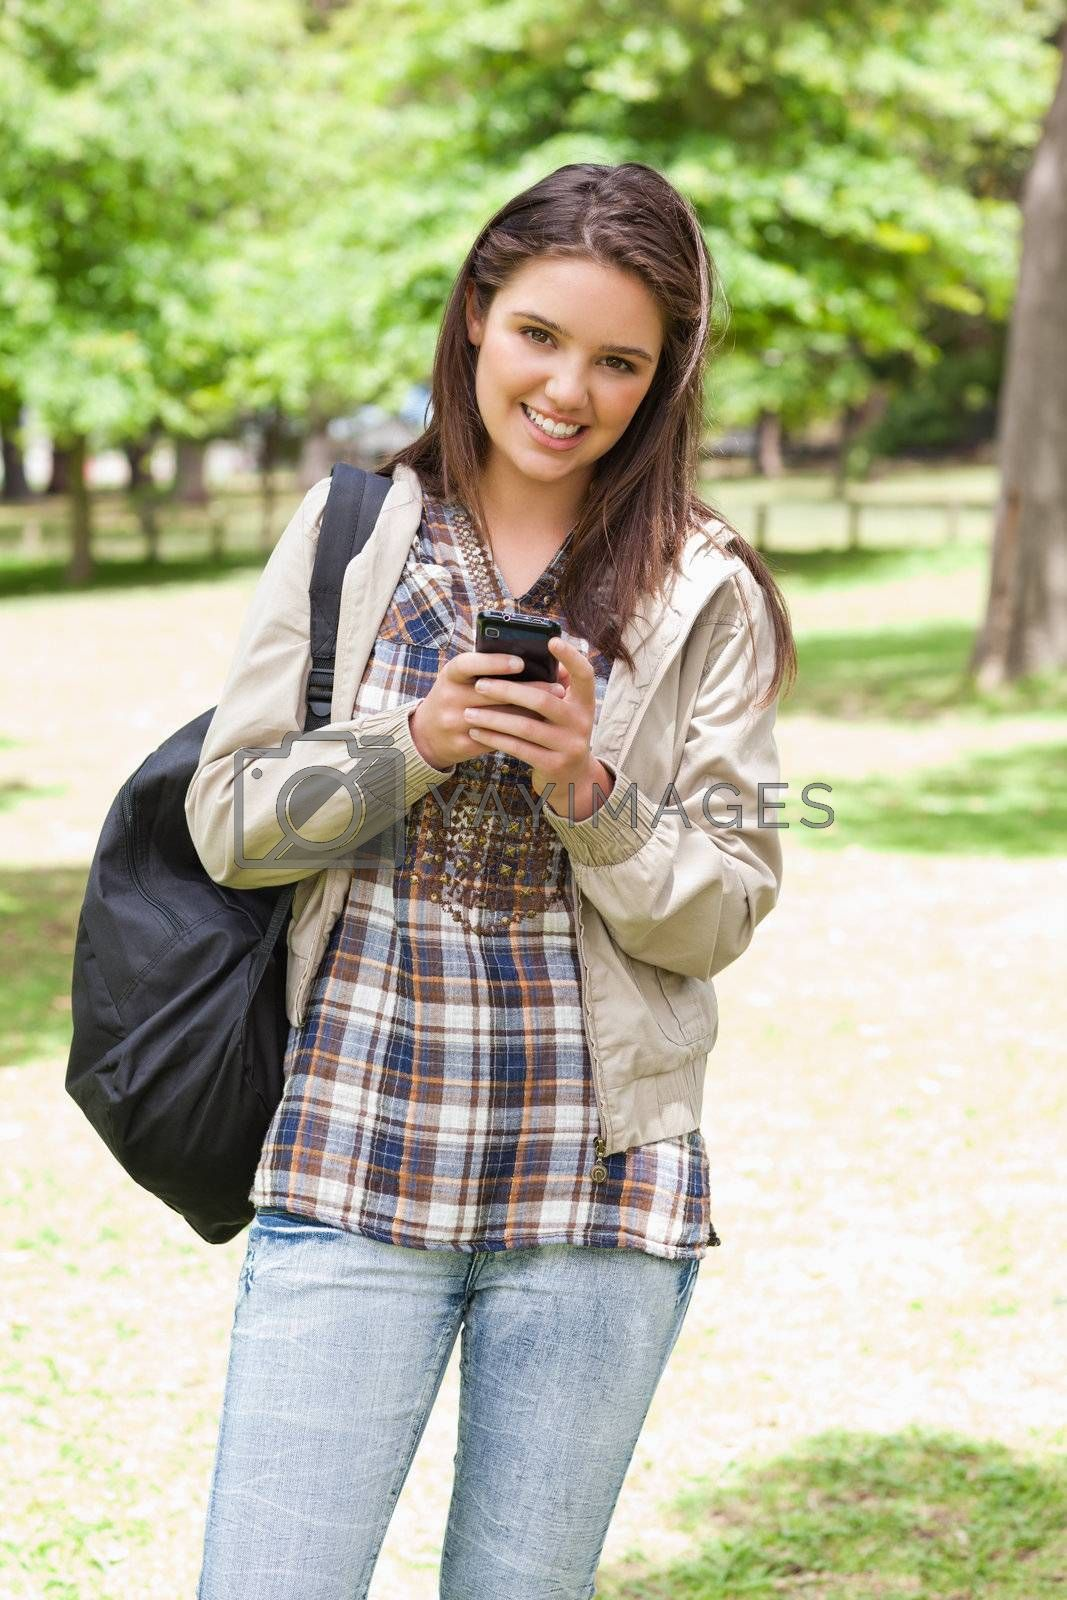 Young smiling student using a smartphone in a park